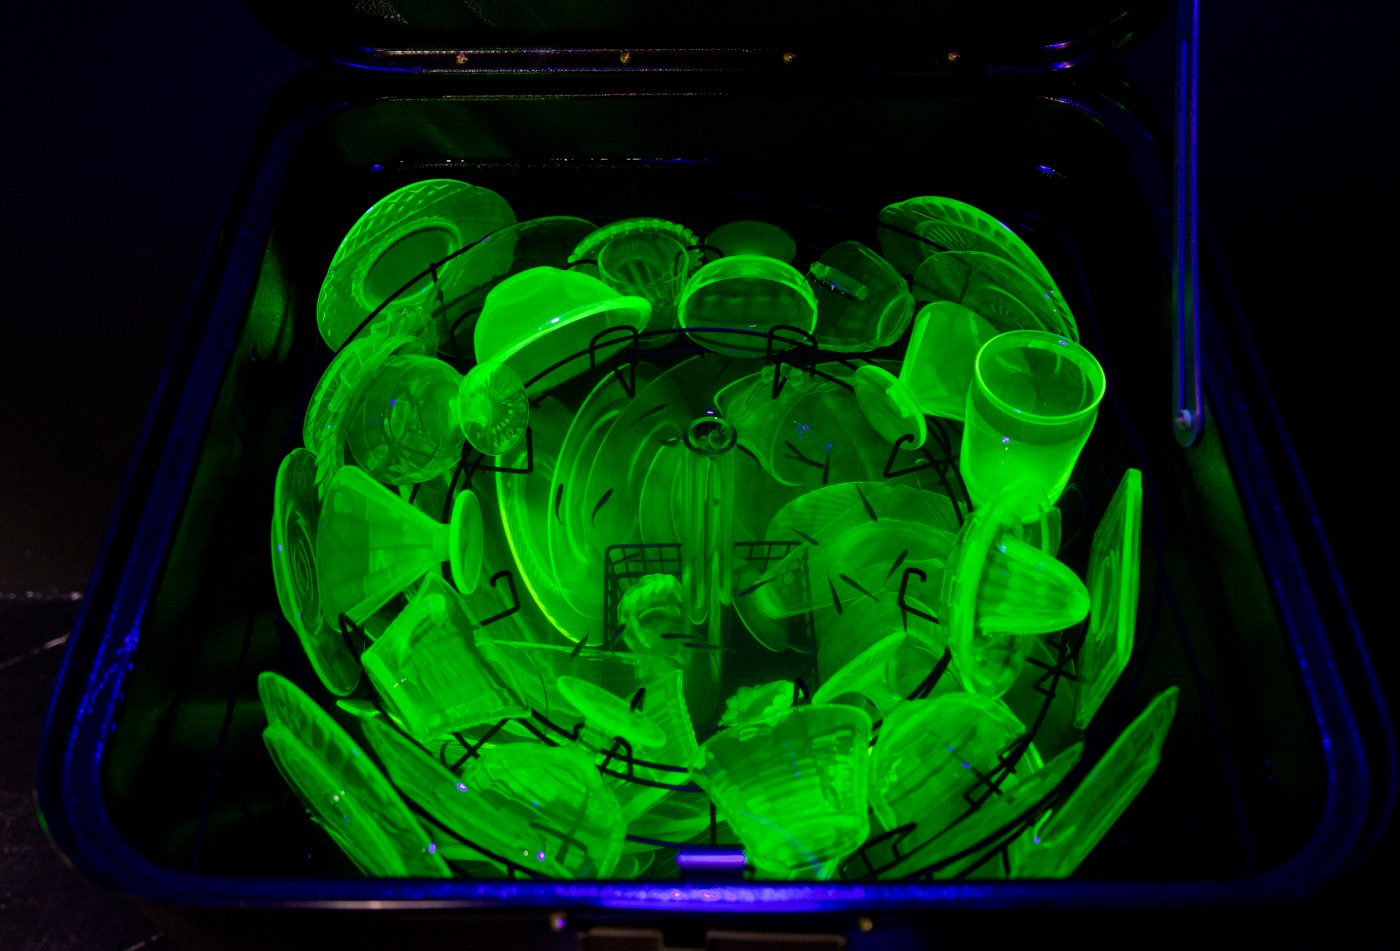 NATURE THEATER OF VIOLENT SUCCESSION  Cold War Dishwasher (Uranium Glass)</I>, 2015 (detail) Vintage refurbished Kenmore dishwasher, assorted uranium glass dishware, live freshwater ecosystem, sump tank, biological filter pump, crushed glass substrate, Danionin sp. fish, blacklight hood lamp 